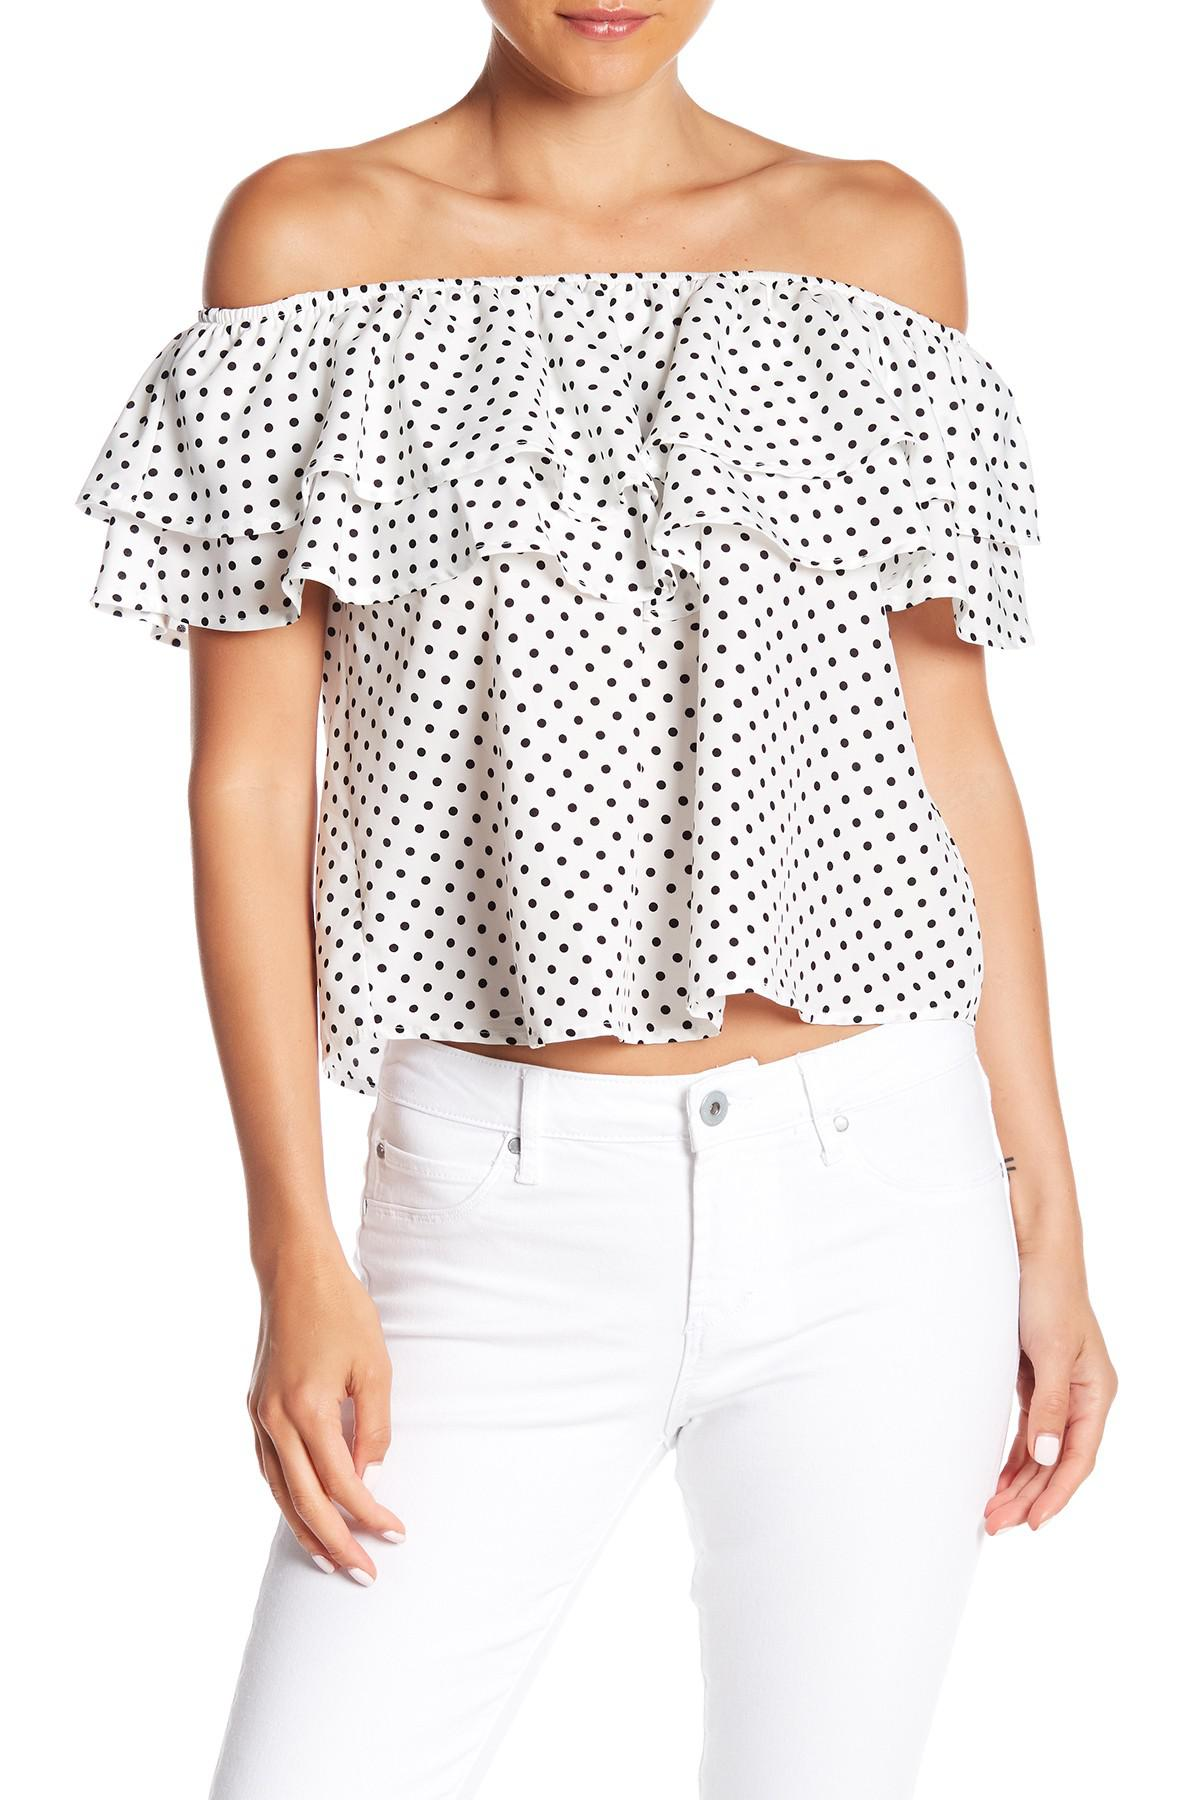 ca70239a4a3cd Lyst - Noa Elle Off-the-shoulder Polka Dot Ruffle Blouse in White